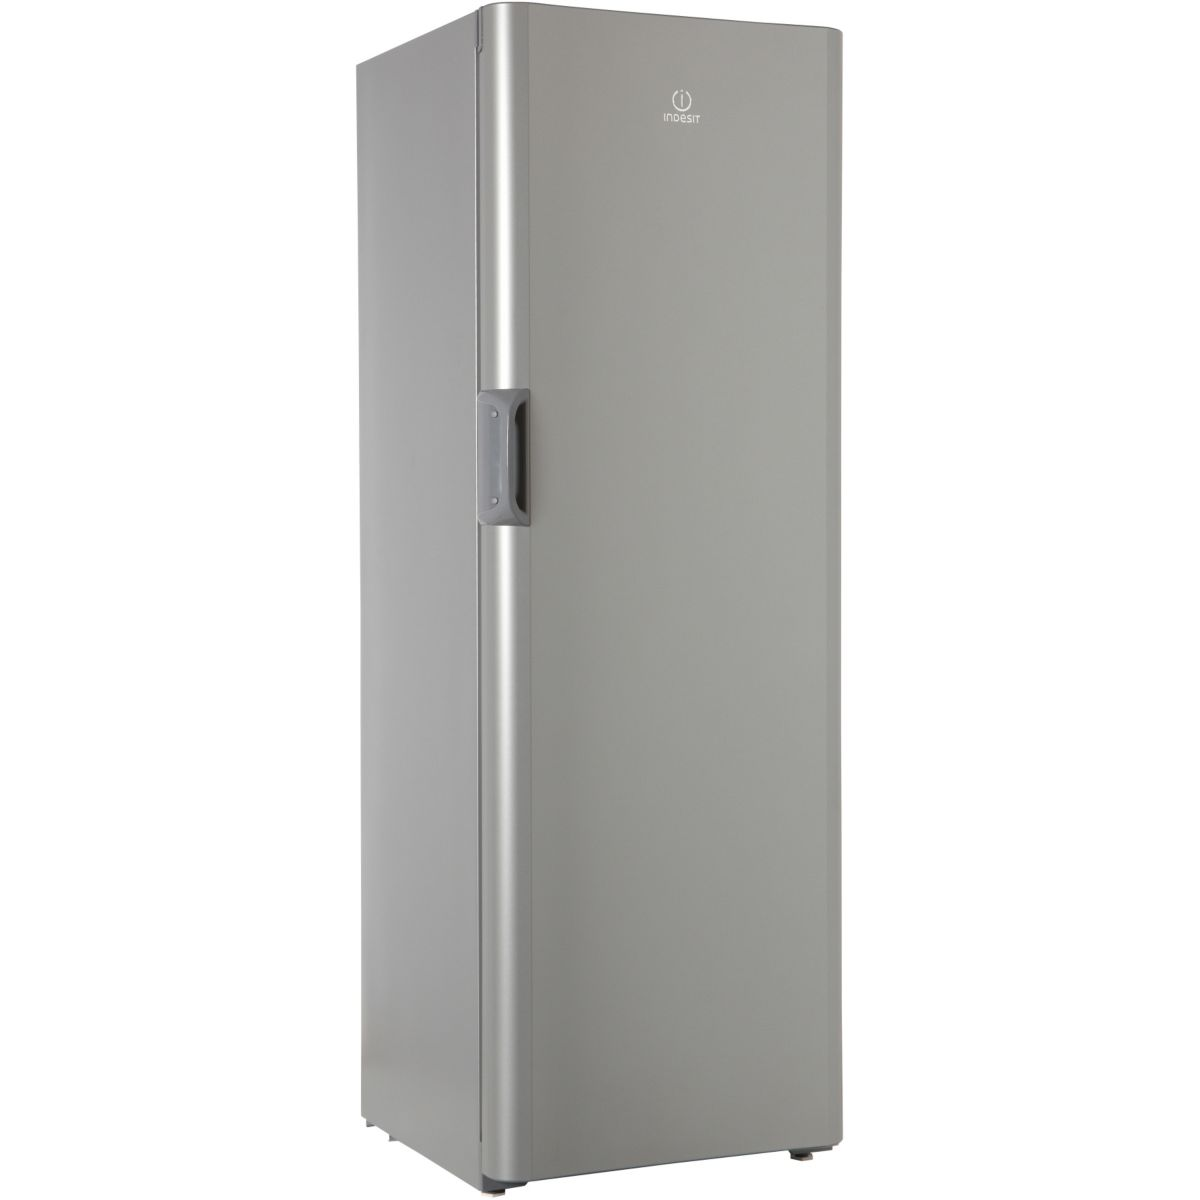 Indesit uiaa 12s 1 cong lateur armoire 235 litres - Congelateur armoire 360 litres ...